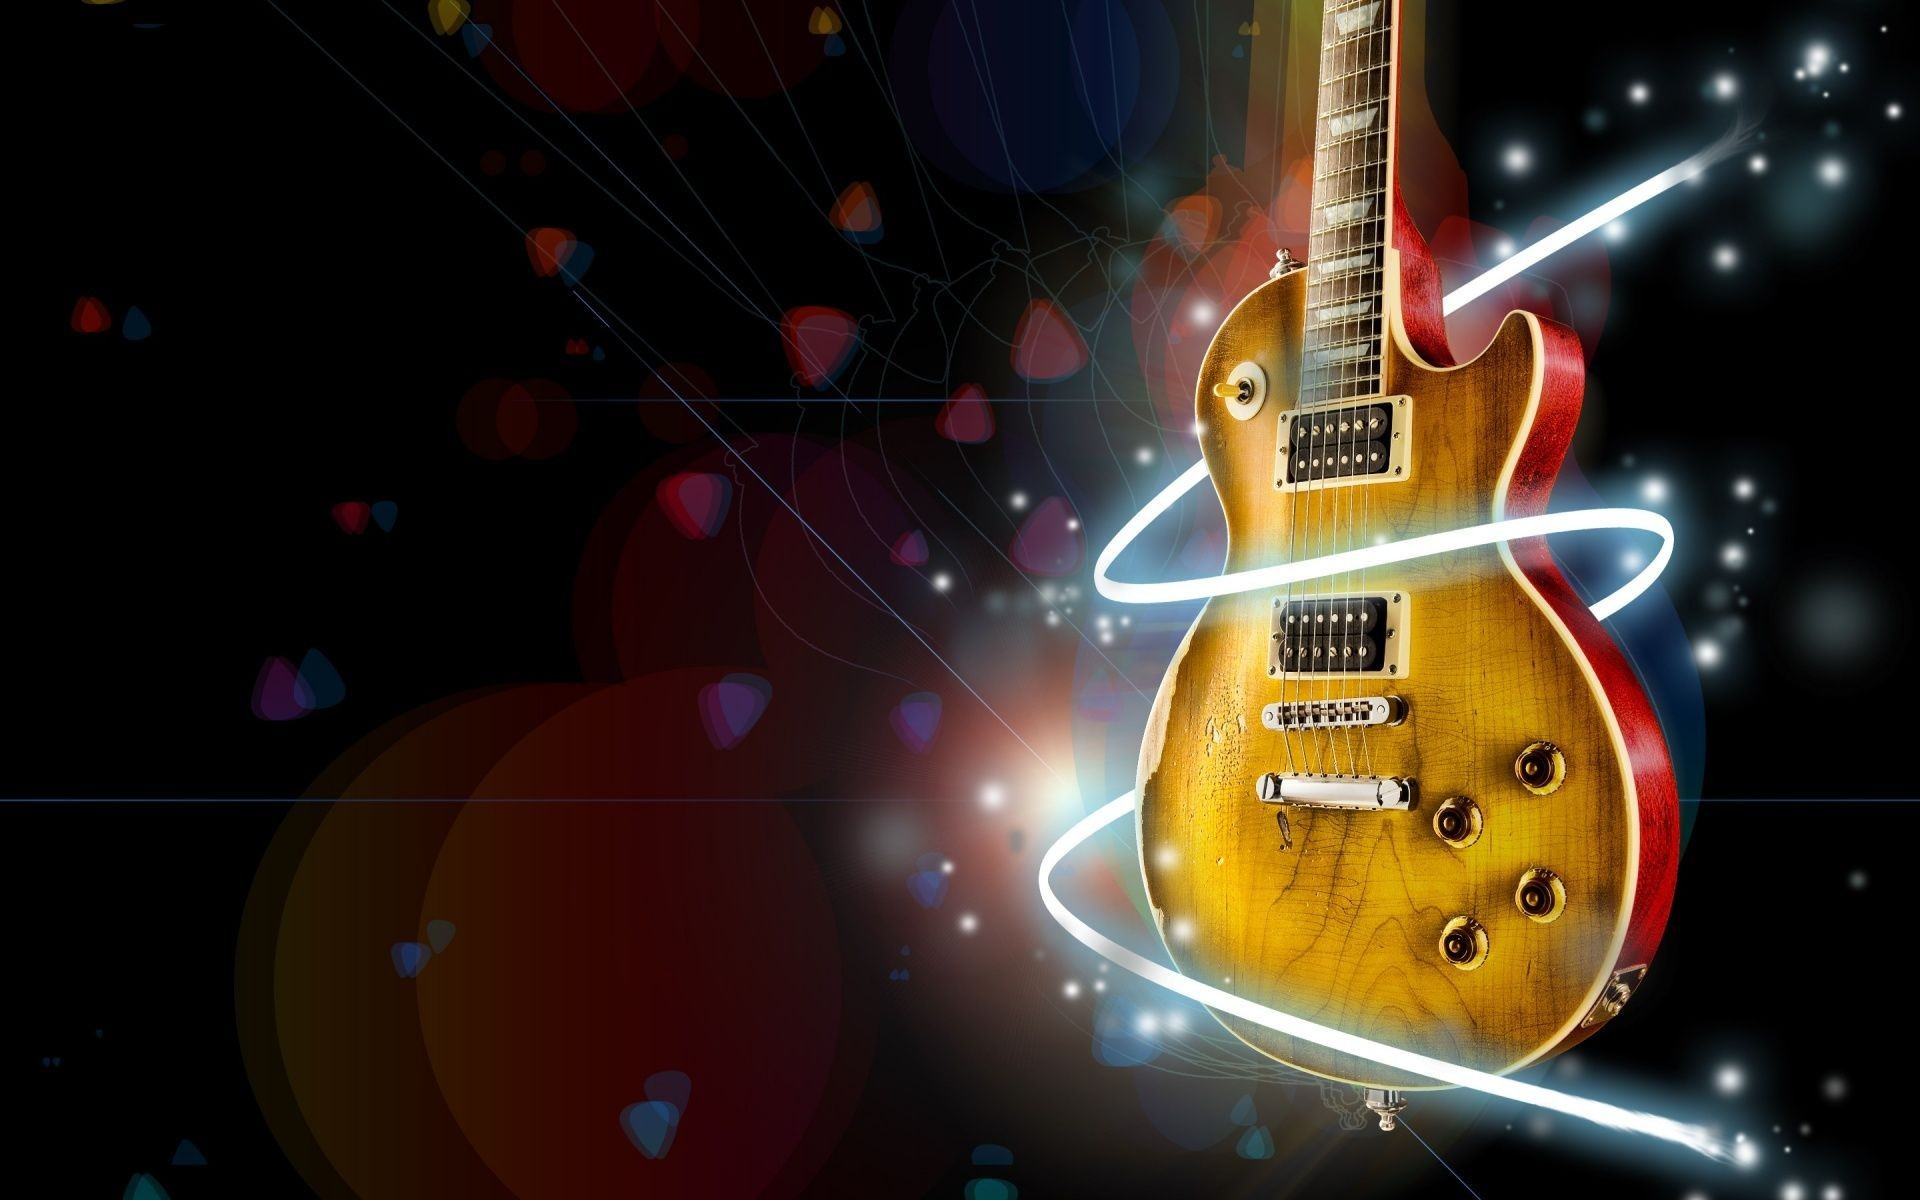 Free Wallpaper For Computers Gibson Guitar Wallpaper photos of .